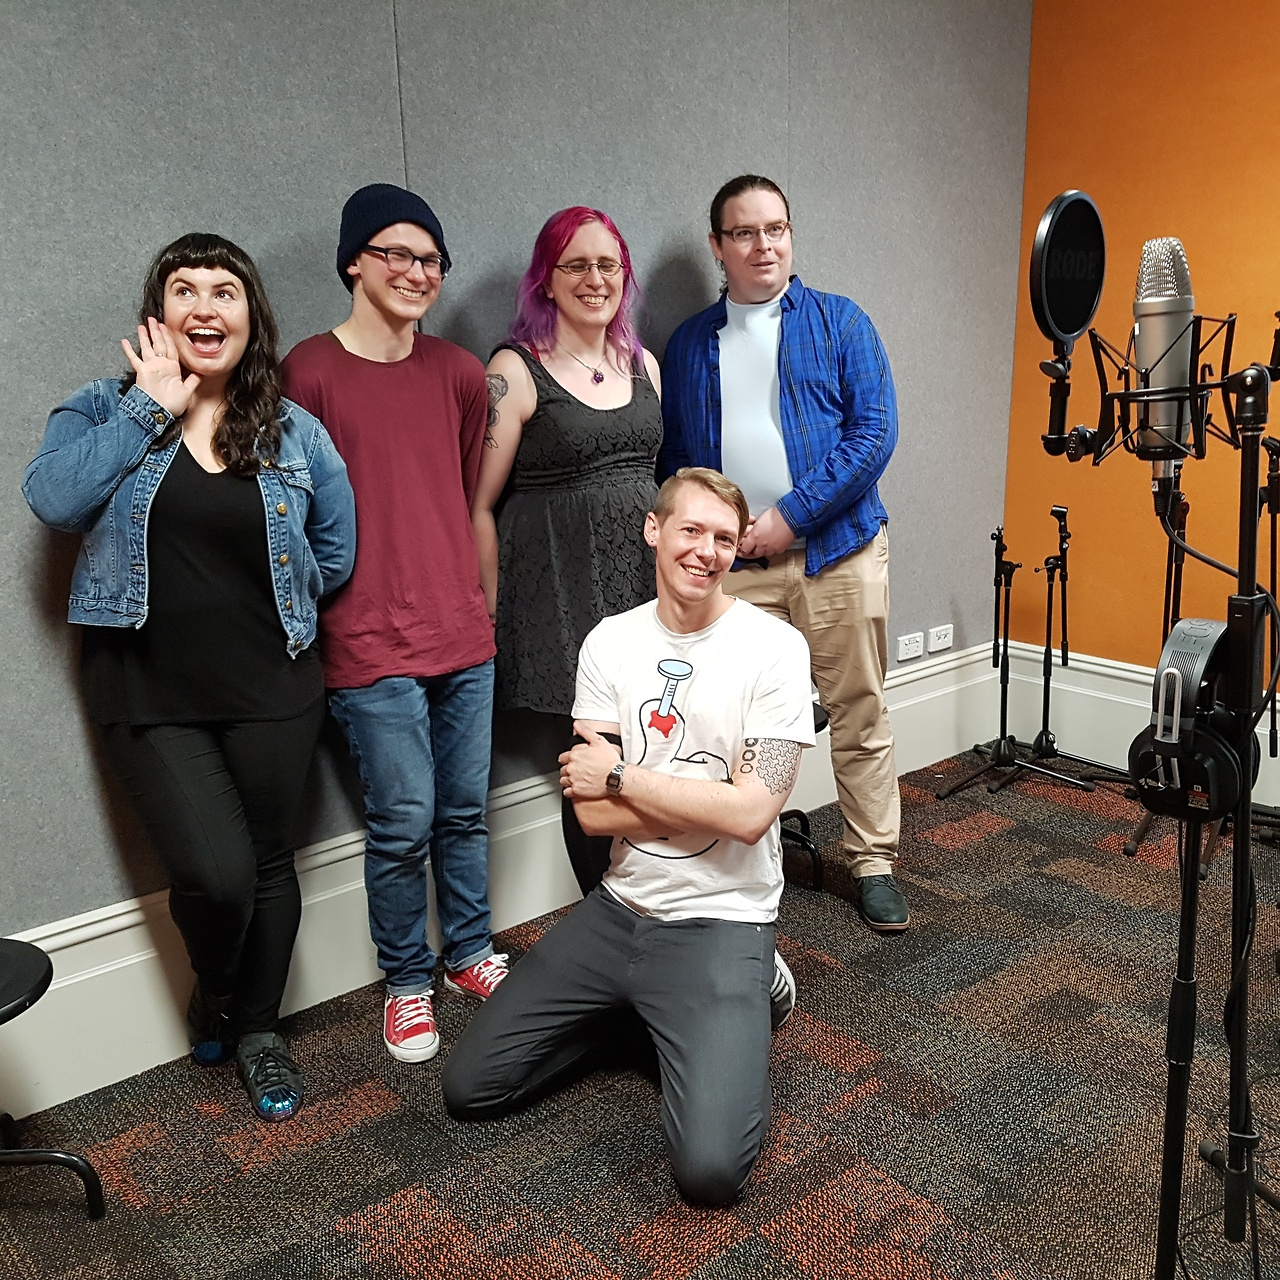 Some of our supporting cast on the first day of recording, along with our recording engineer and one of our producers.